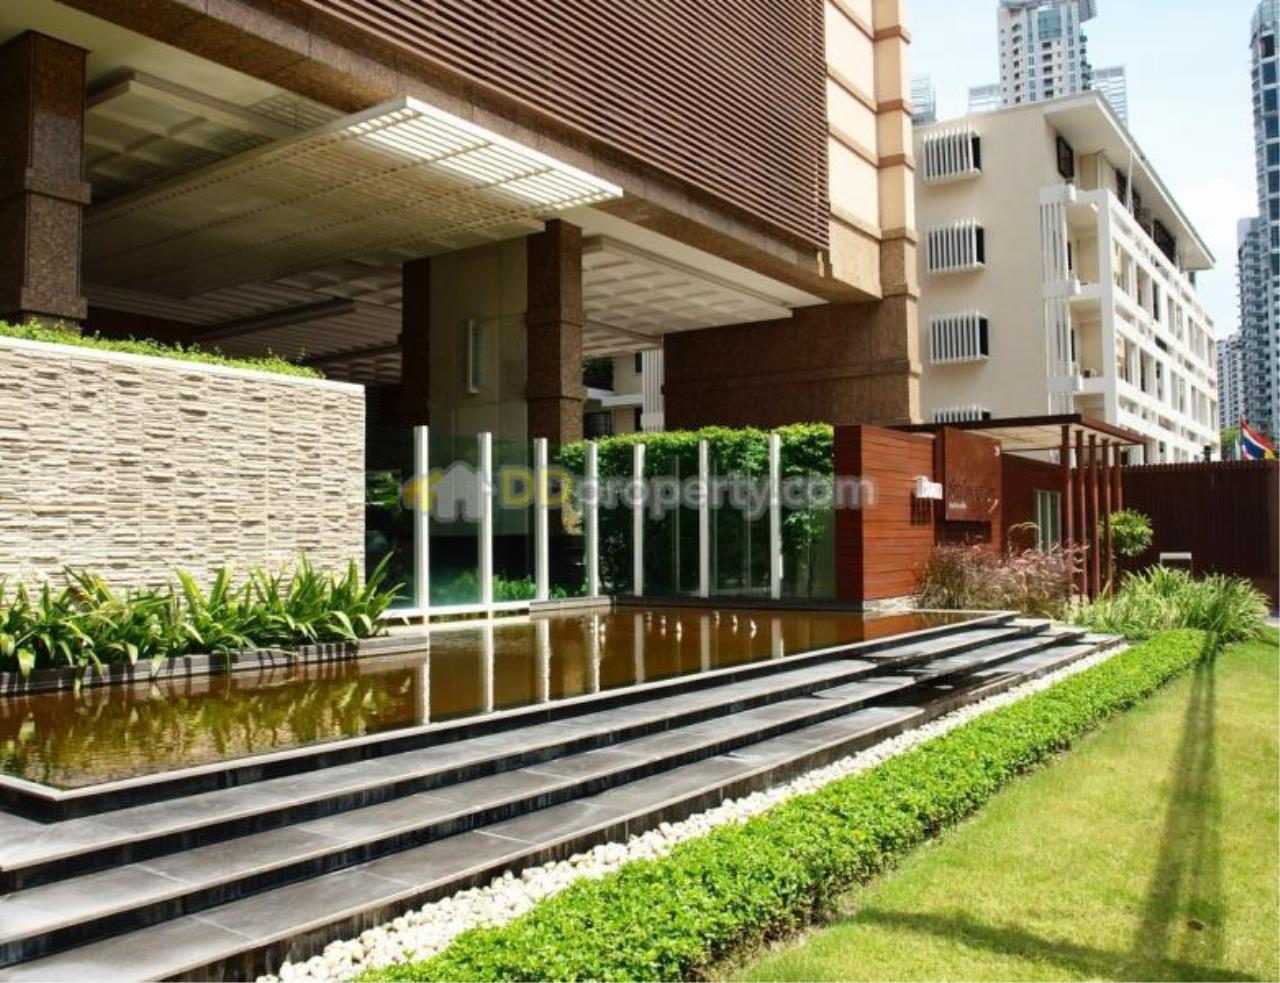 Quality Life Property Agency's ****New***Condo For Sale With Tenant 3 Bedroom At Baan Siri 24, Corner Unit Wide Area On High Floor 3